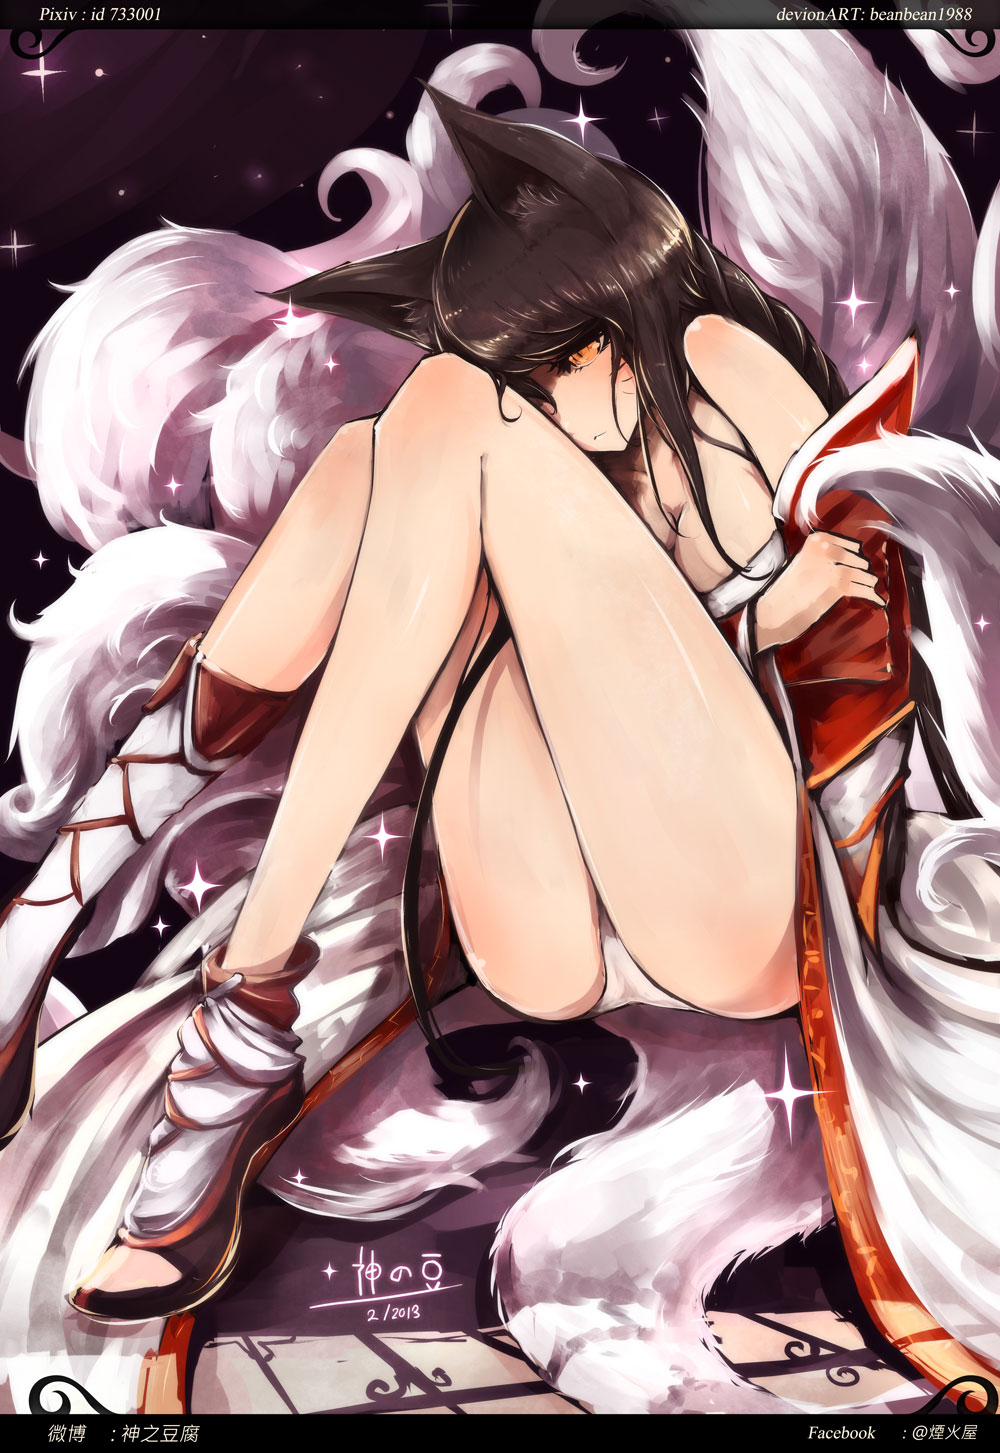 [ LOL ] Drawing Practice - Ahri ( finish! ) by beanbean1988